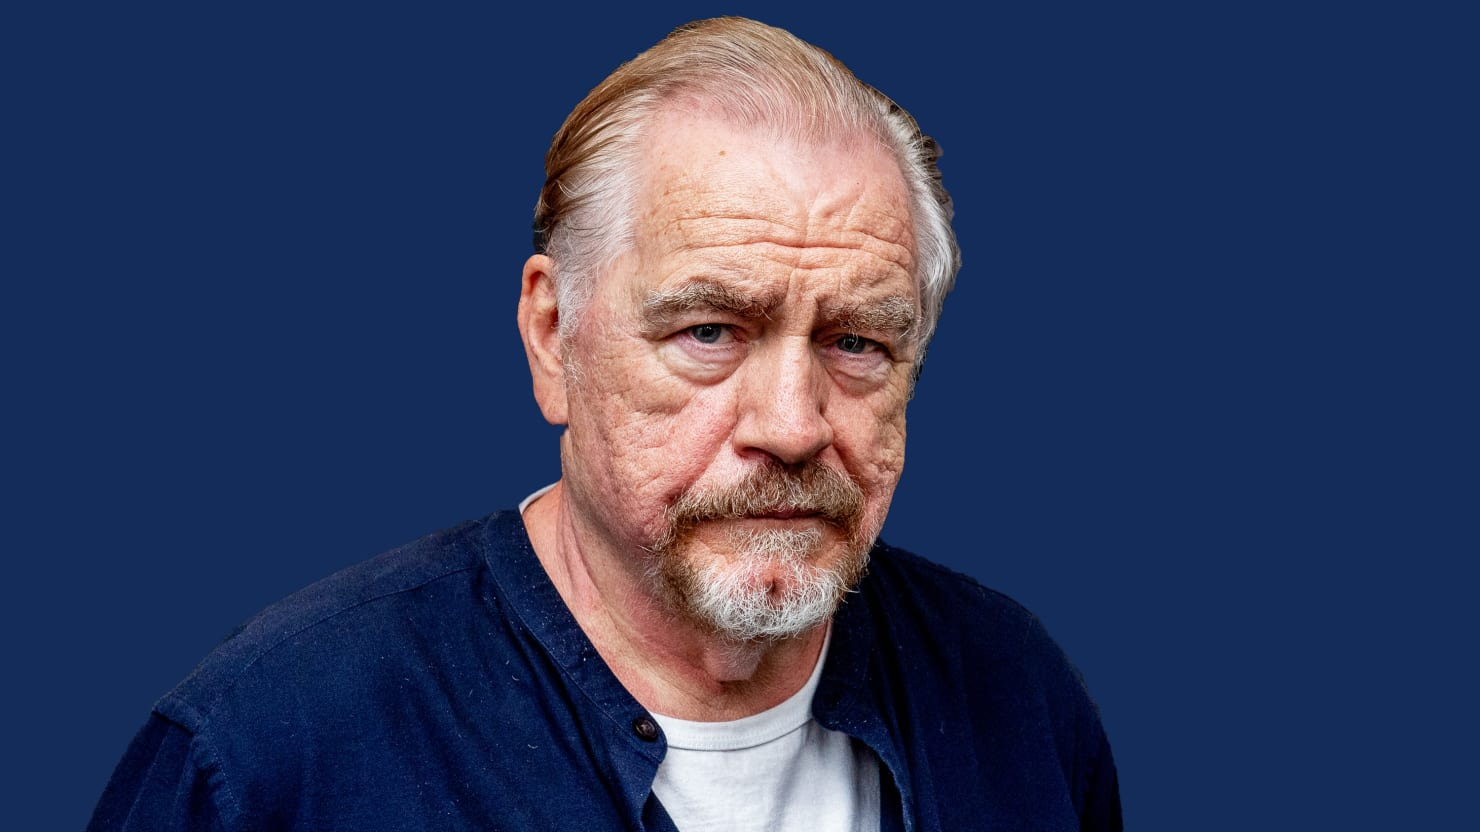 Brian Cox on Succession's Season 2 Finale, Trump, Murdoch, Scottish Independence, and Playing LBJ